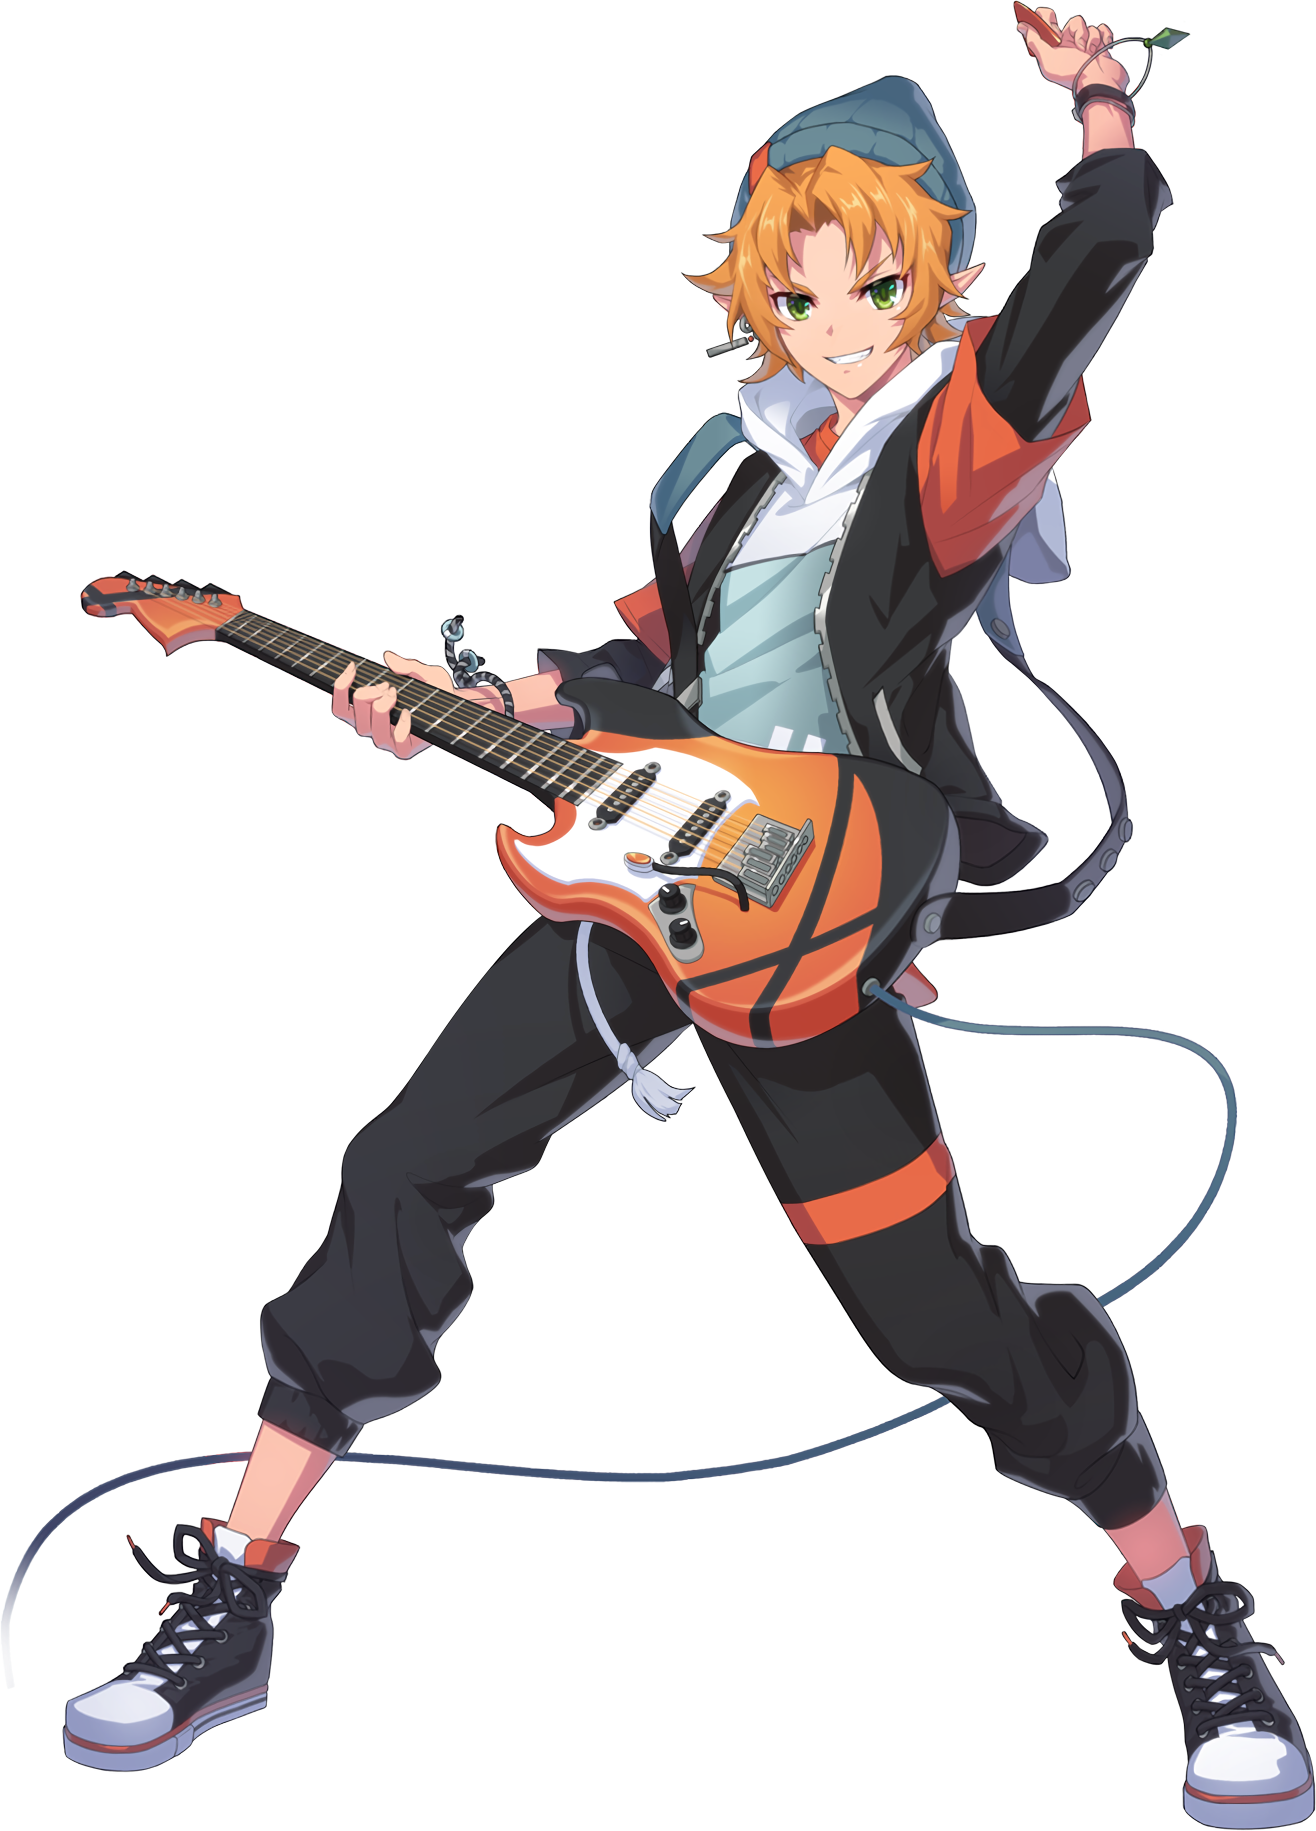 Ryan Grand Chase Dimensional Chaser Grand Chase Wiki Fandom Powered By Wikia Anime Character Design Concept Art Characters Game Character Design